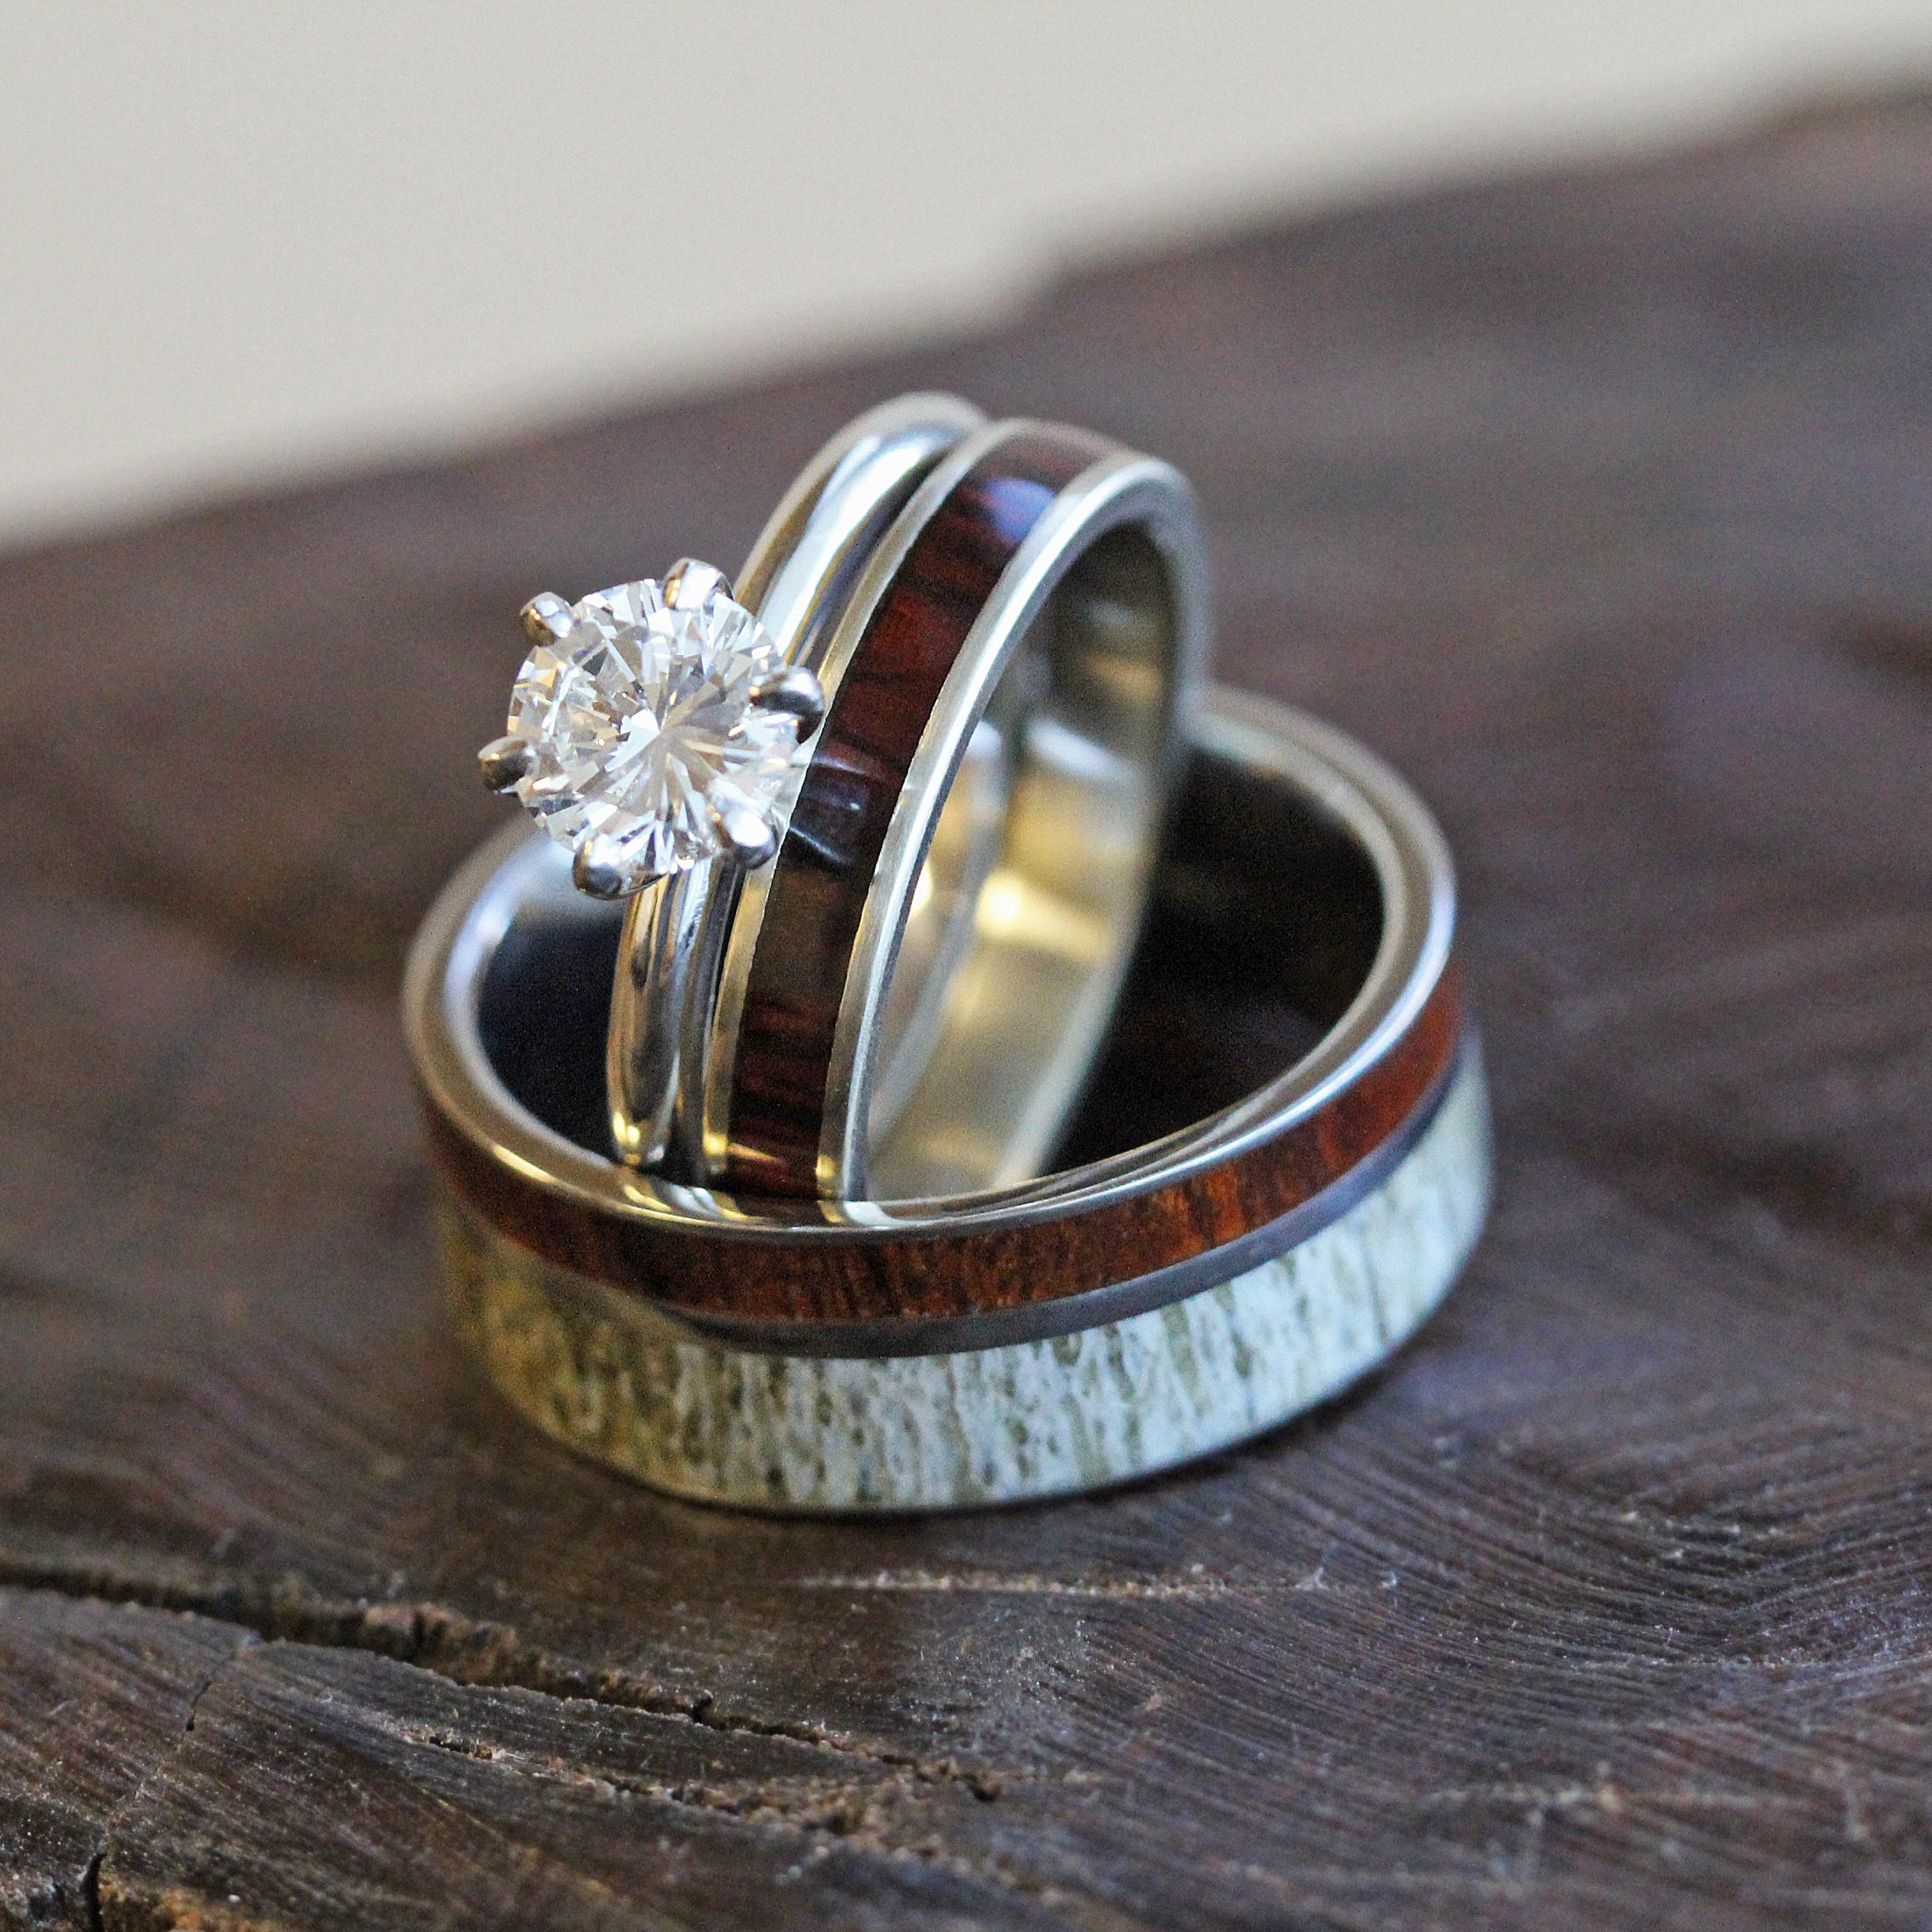 web made southwestern wedding in jewelry kansas rings city mikc marketplace